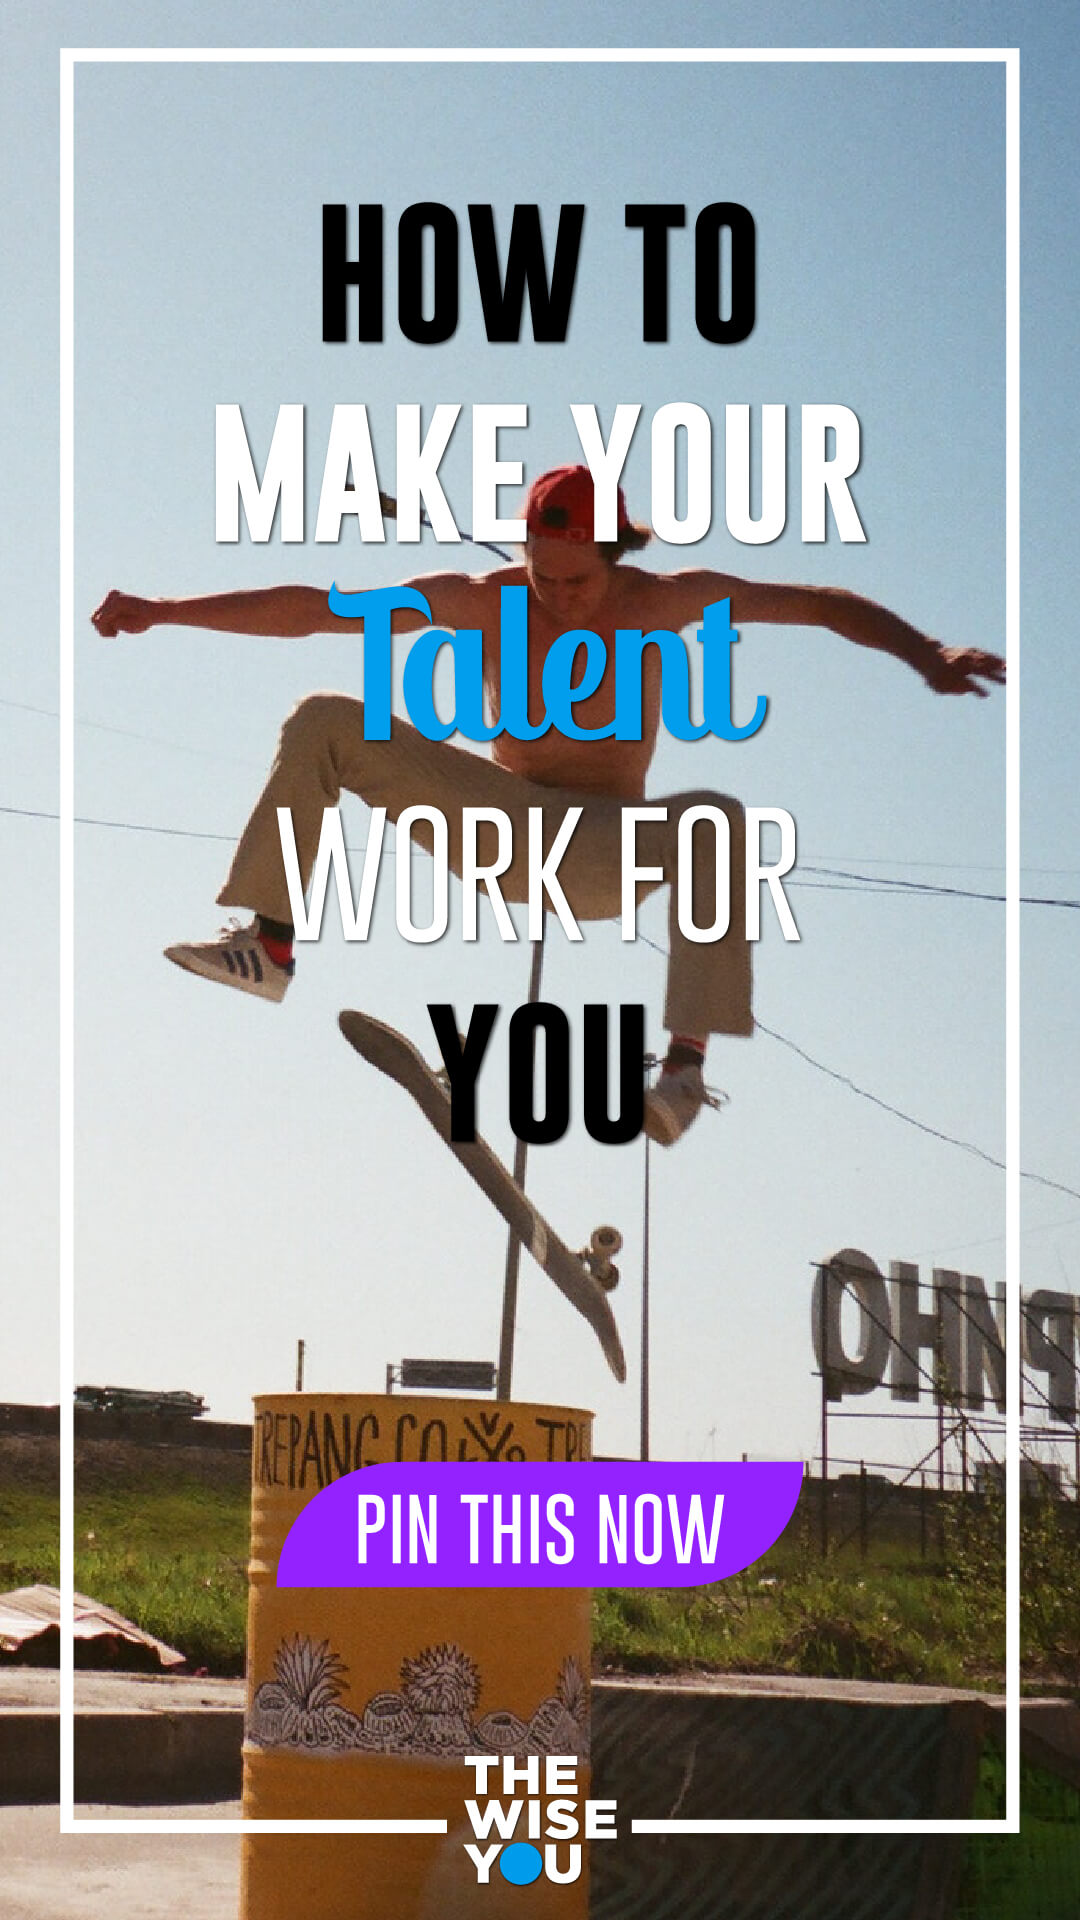 How To Make Your Talent Work For You